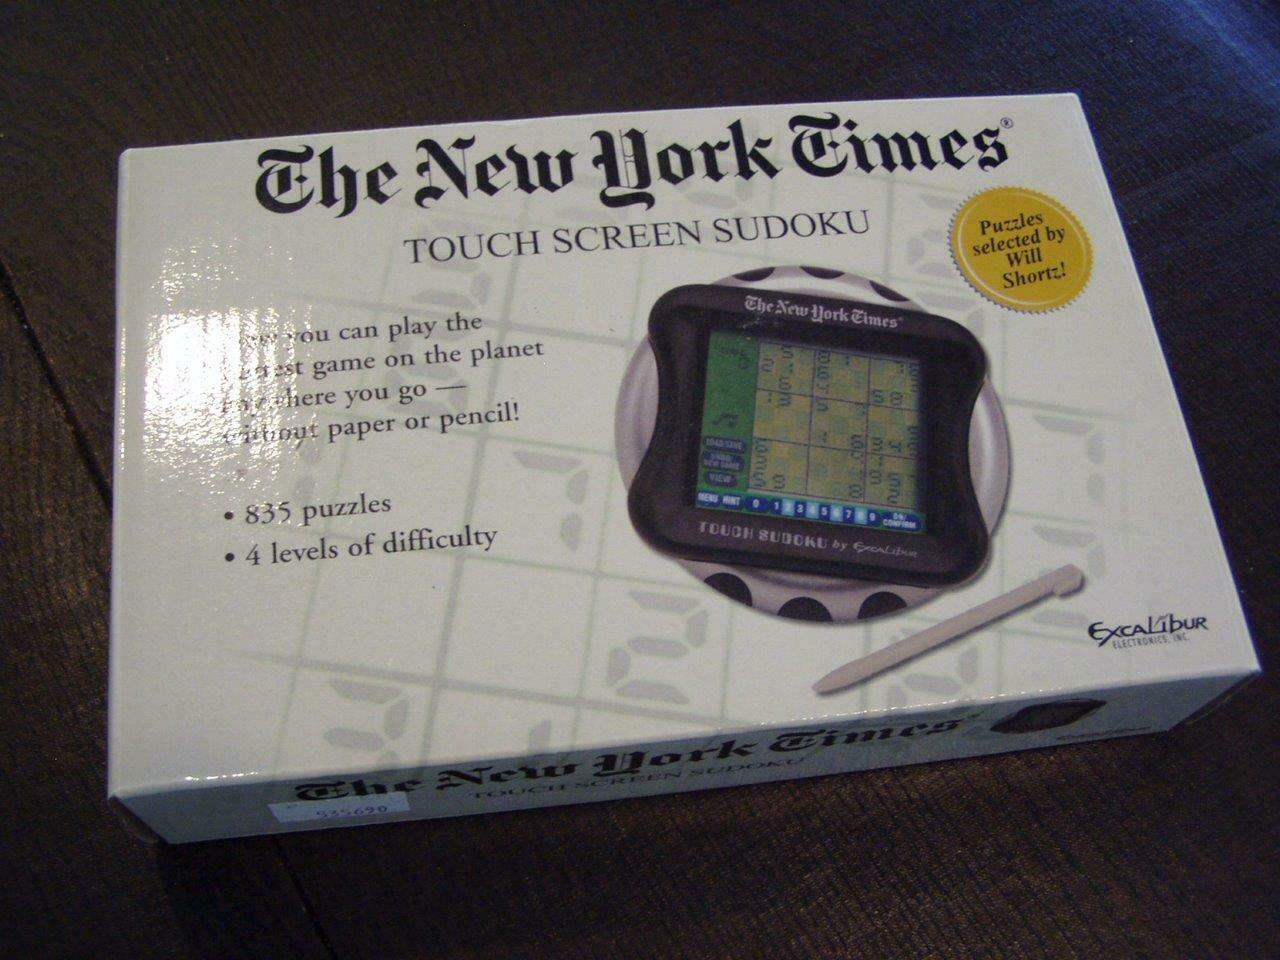 The New York Times Touch Screen Sudoku Handheld Game New Original Box & Stylus